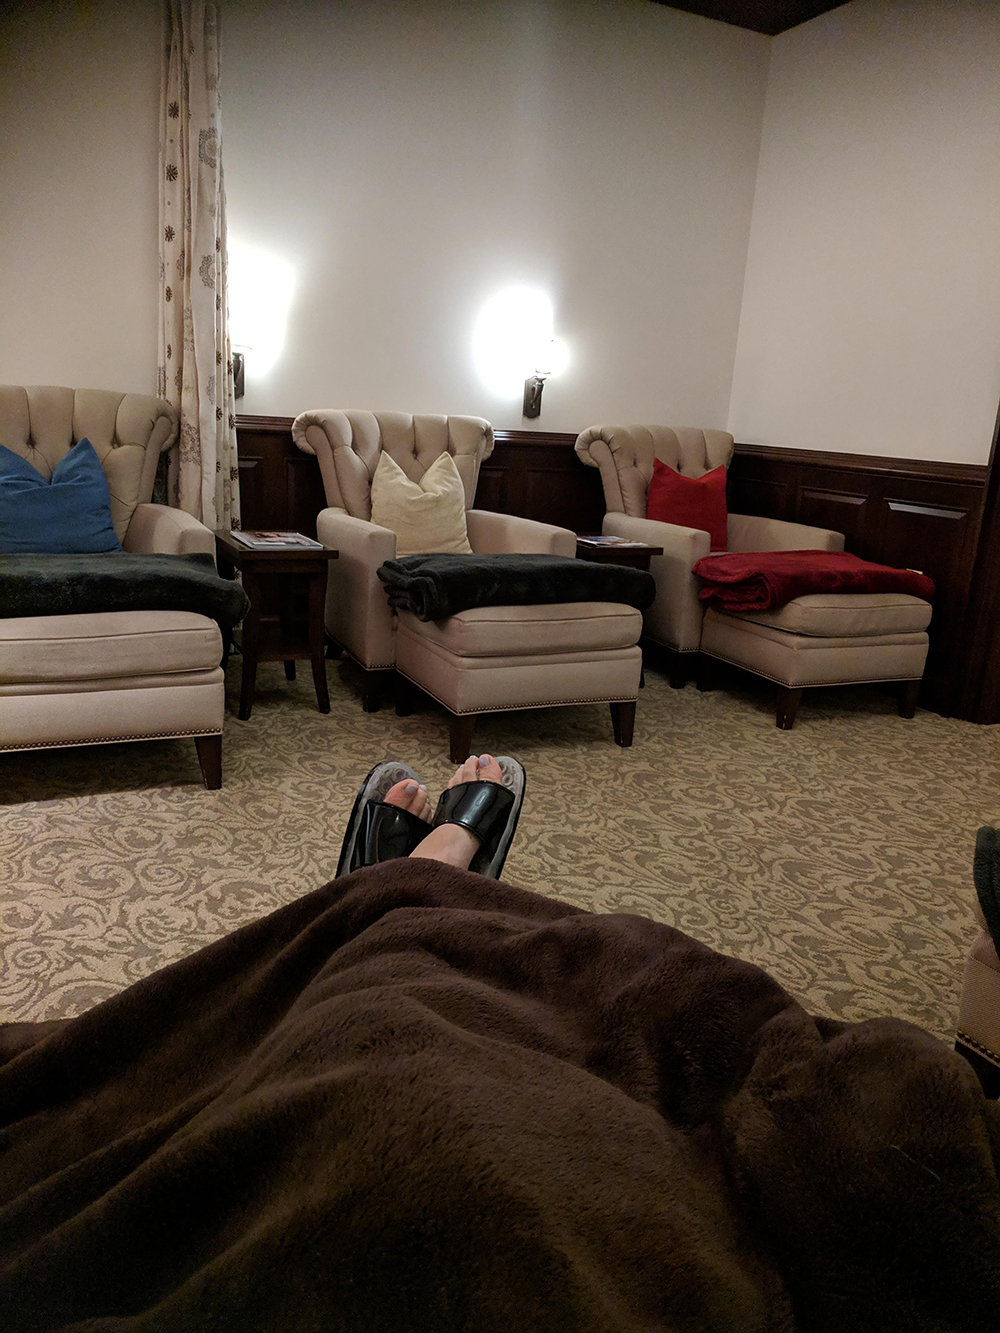 I could stay here all day! Kicking my feet up in the relaxation lounge pre-treatment.